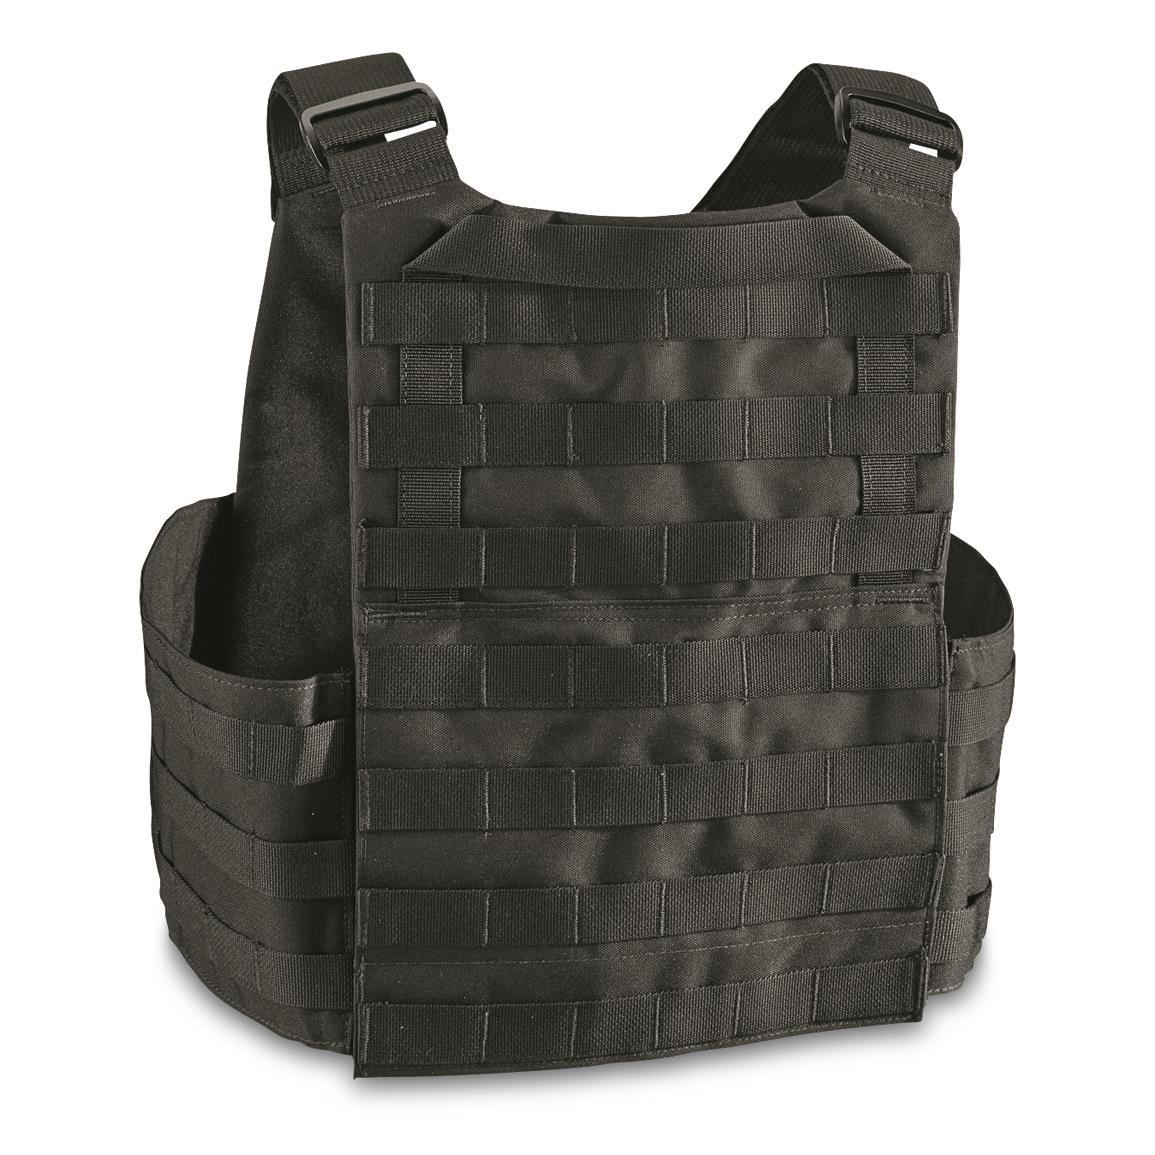 "Rear pocket for 10"" x12.5"" ballistic plate"